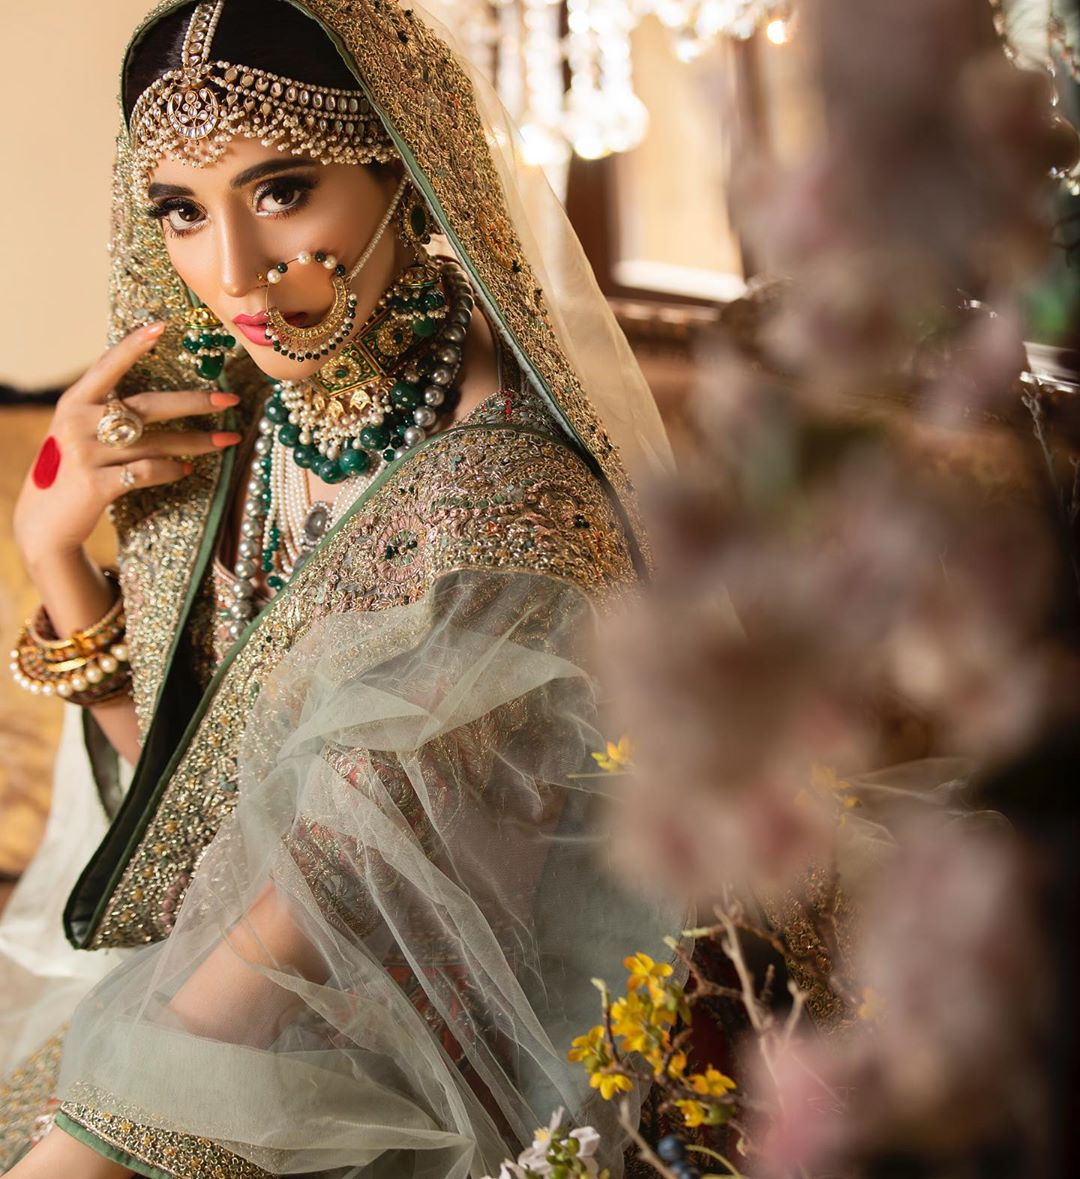 Urwa Hocane is Looking Stunning in her Latest Bridal Shoot